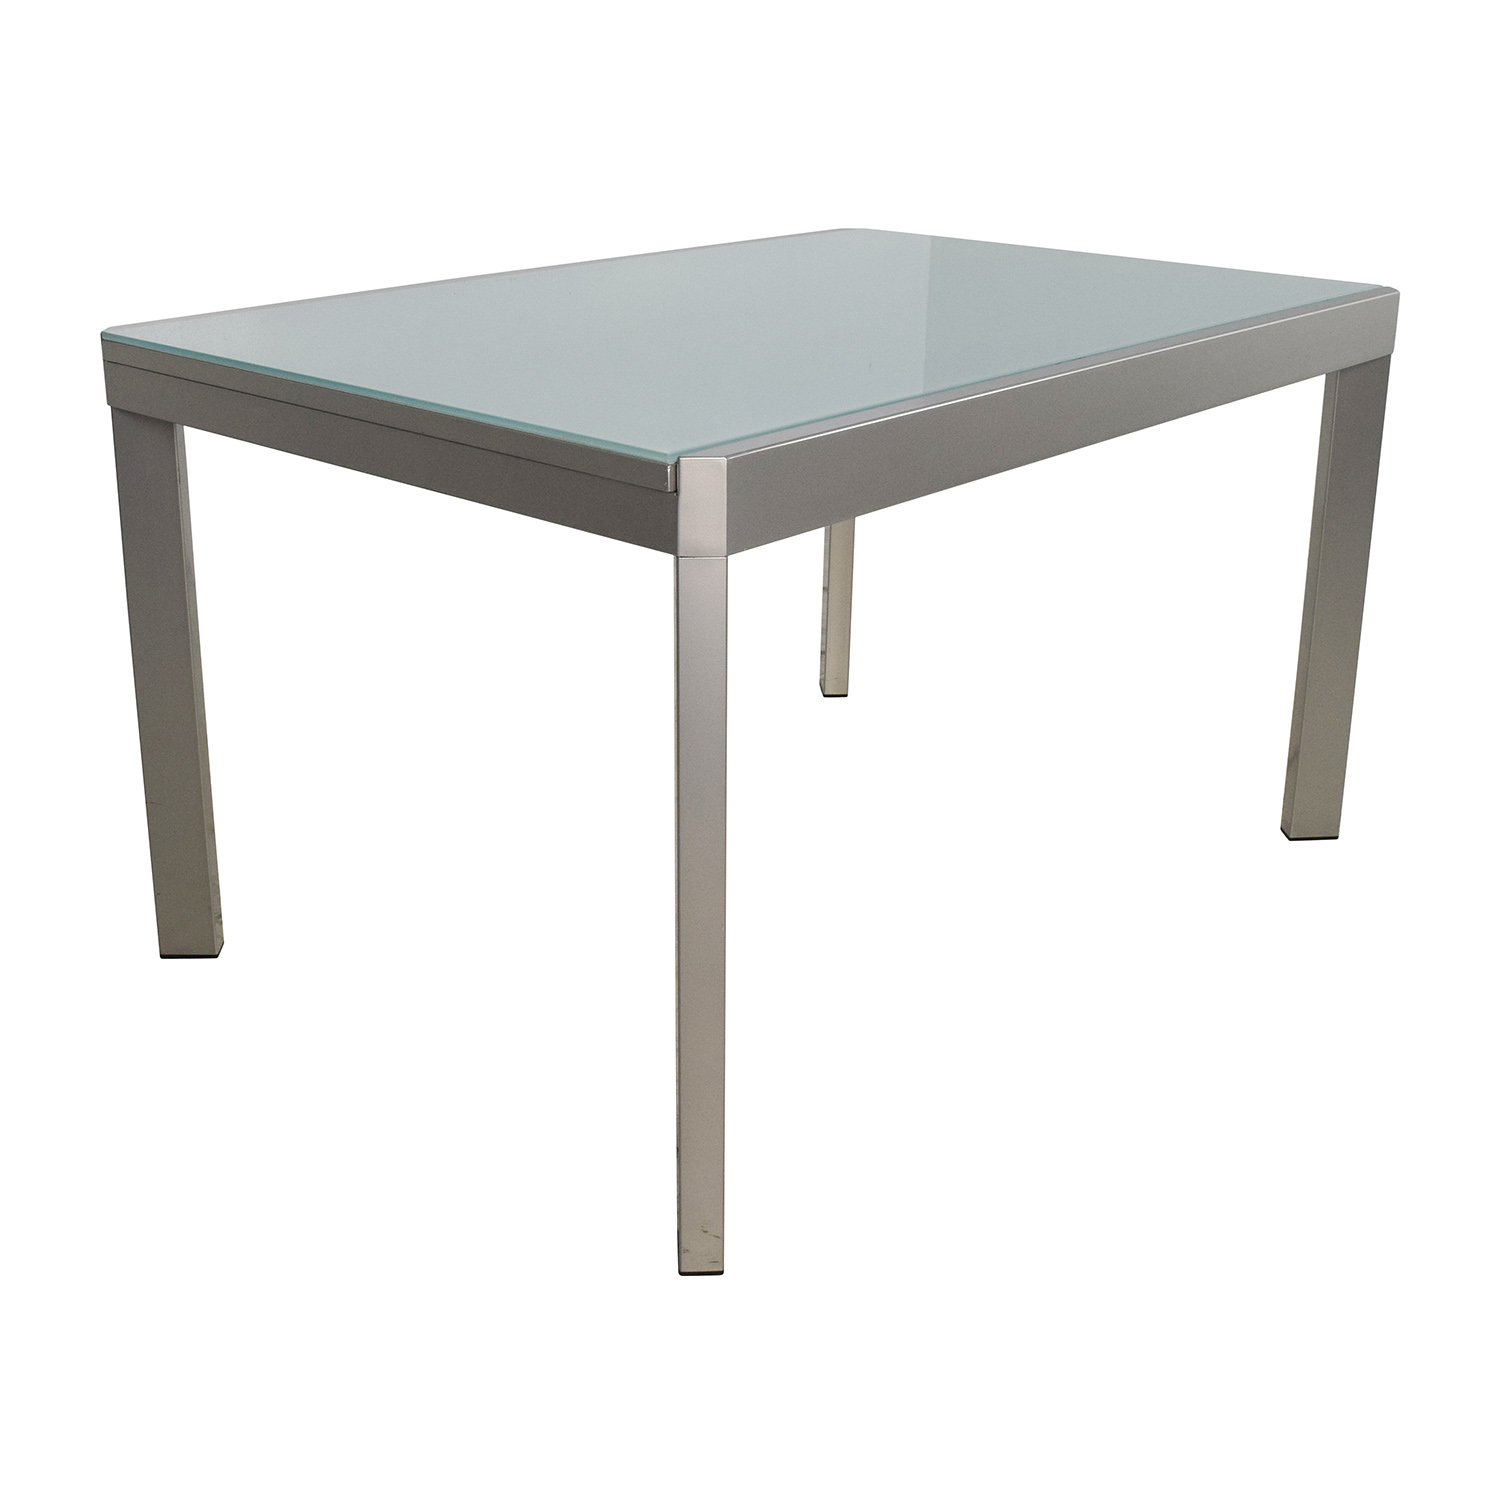 86 Off Calligaris Calligaris Extendable Glass Dining